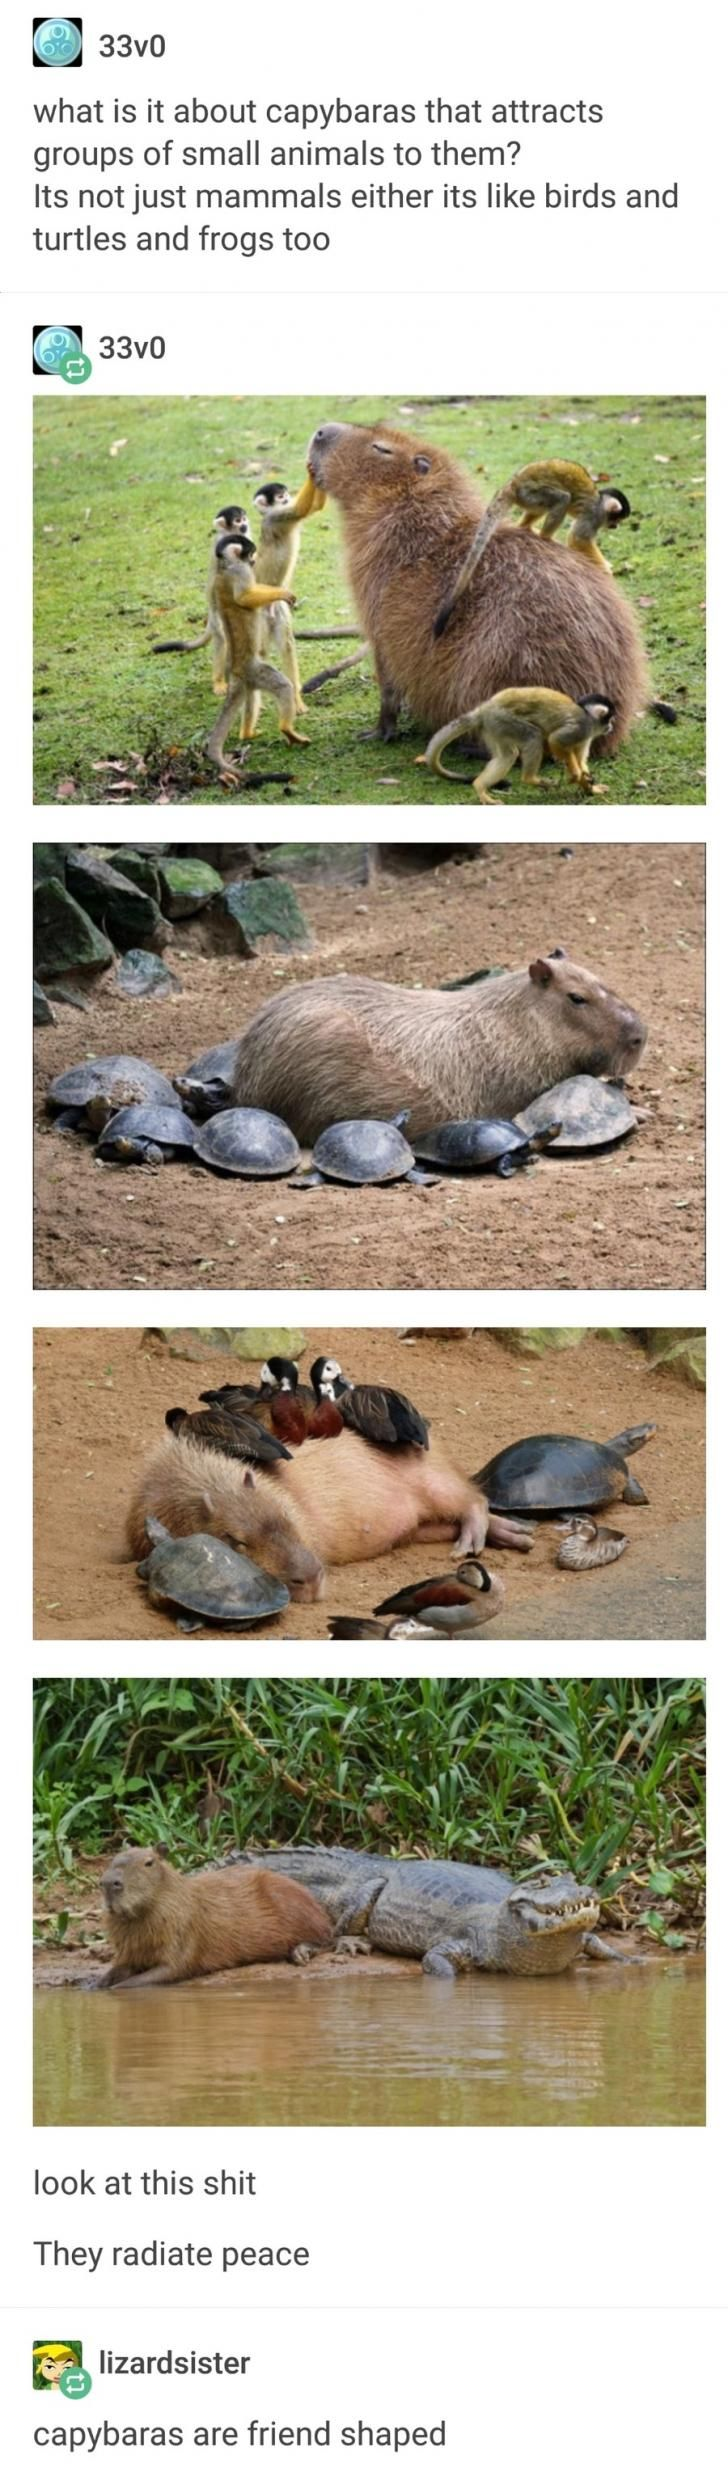 2,890 points • 73 comments - Capybara,the most wholesome animal - IWSMT has amazing images, videos and anectodes to waste your time on